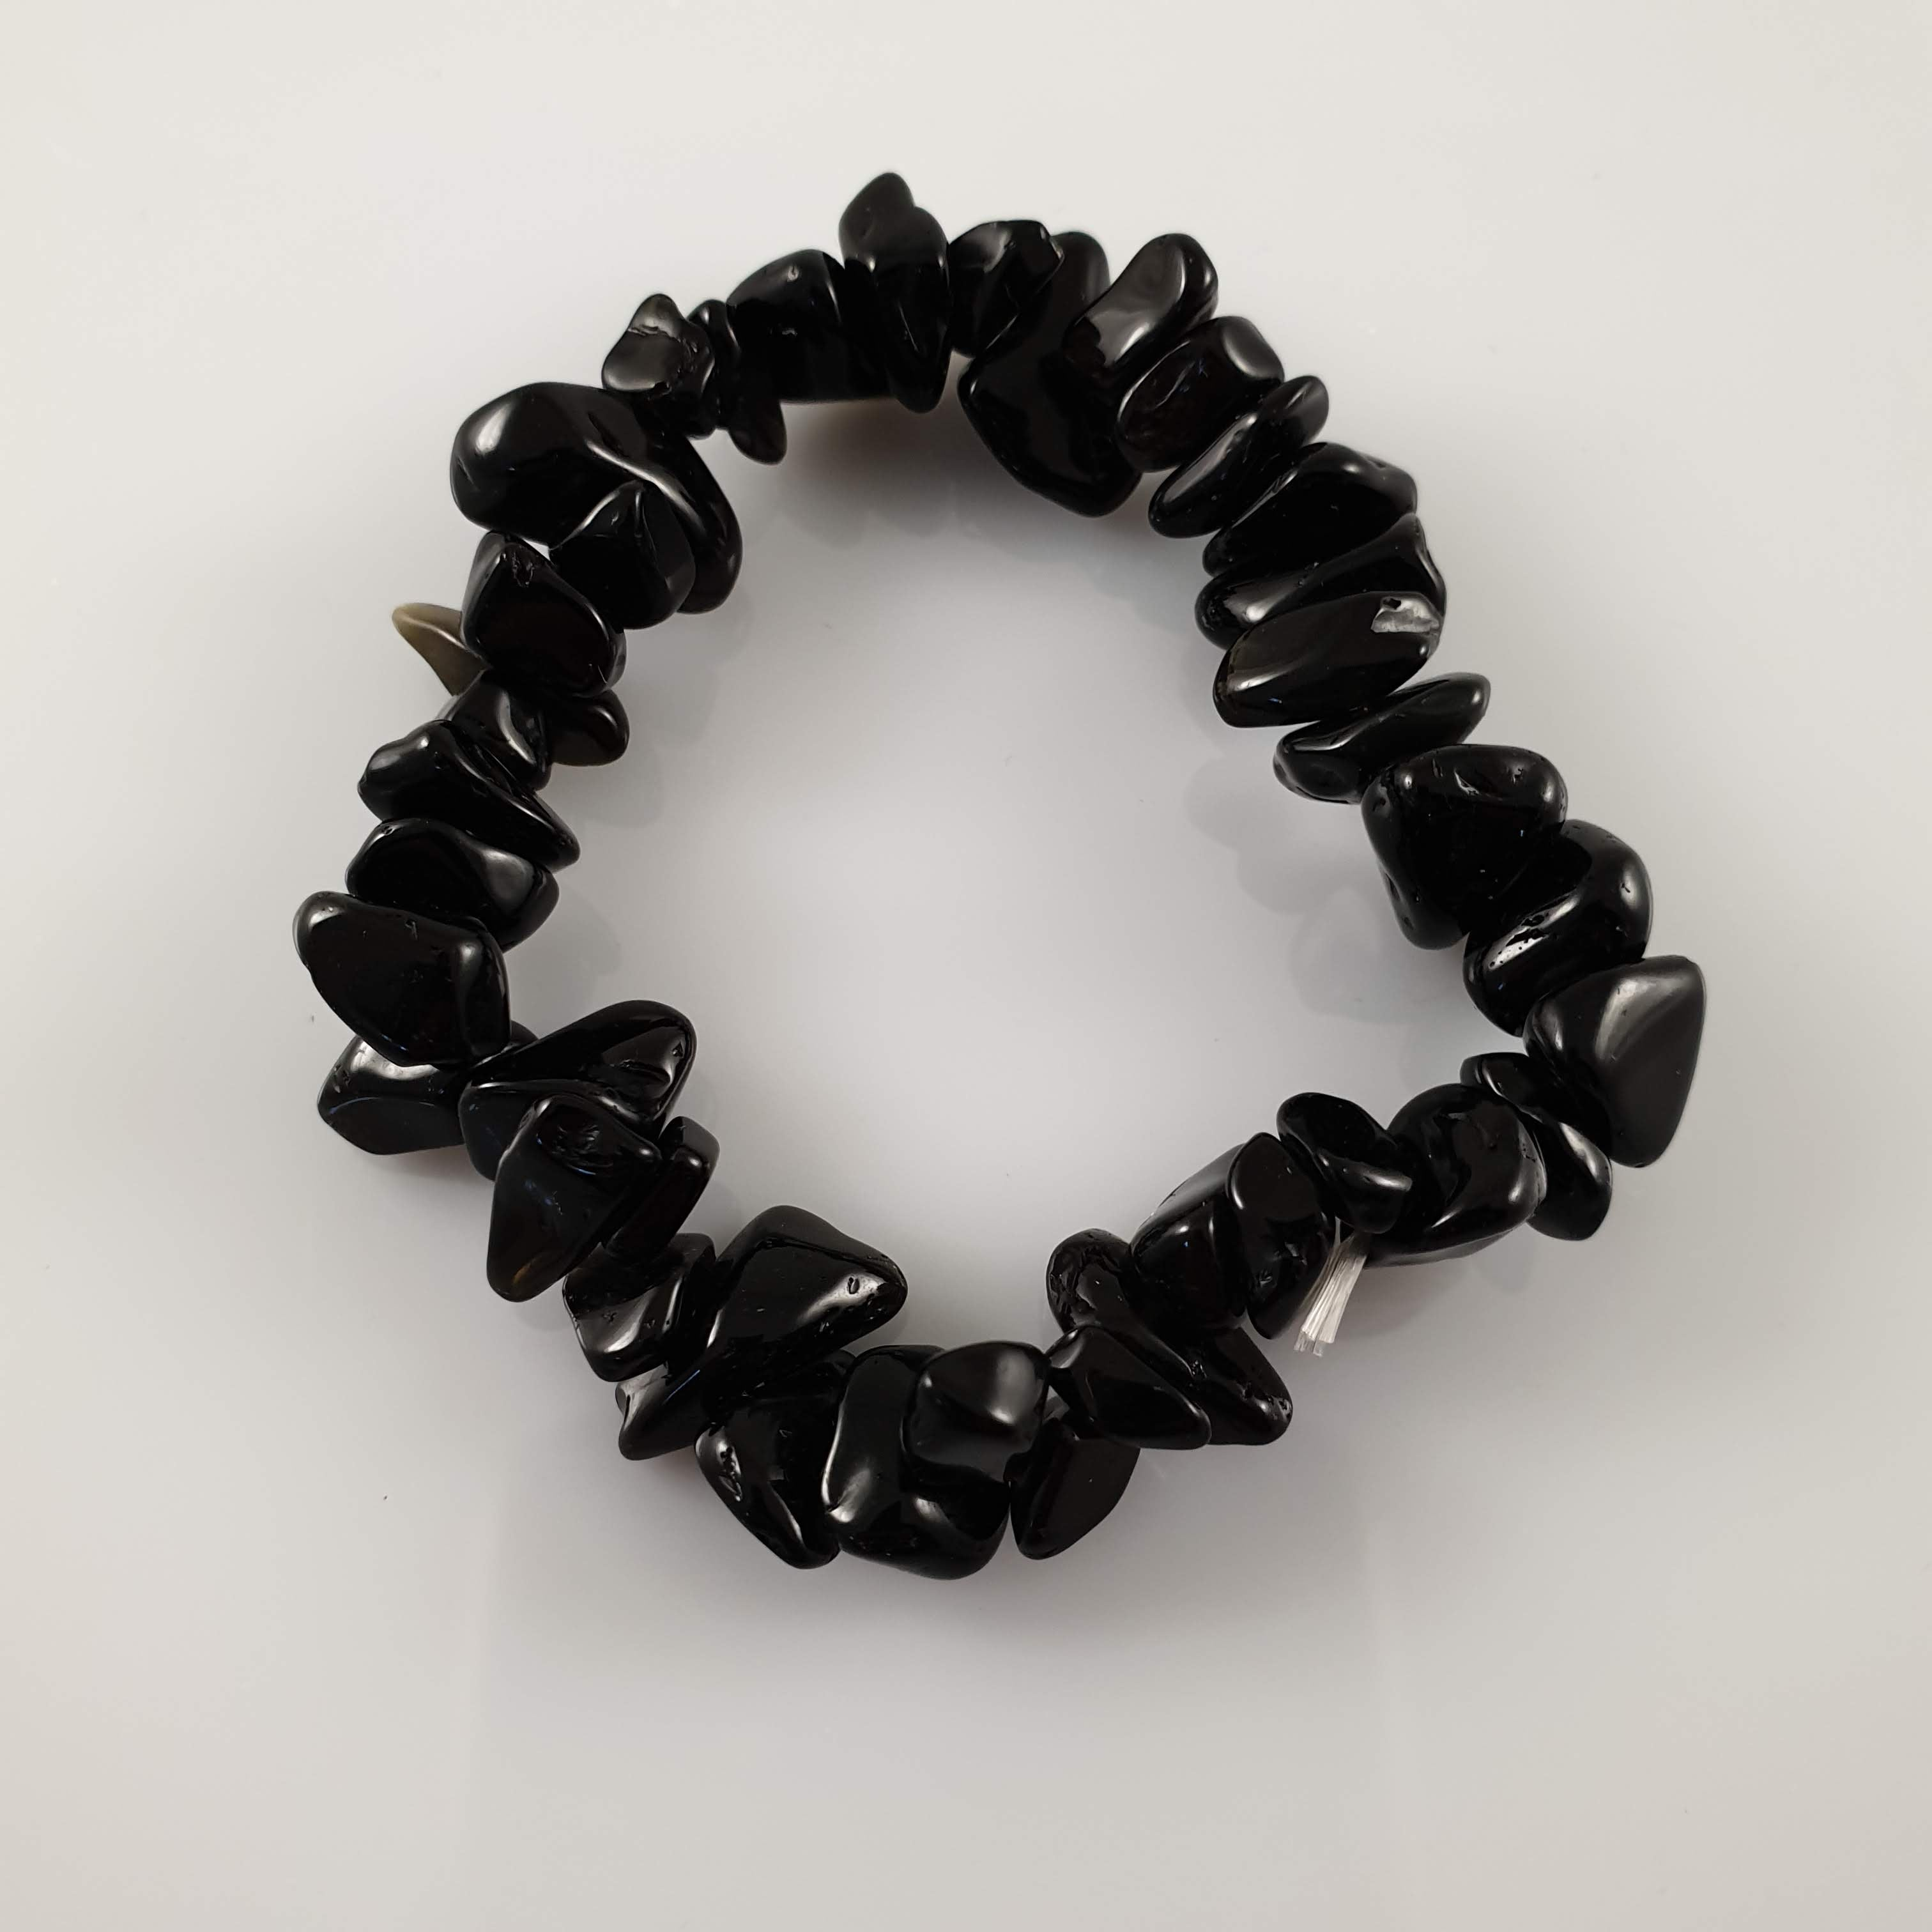 Black Obsidian Crystal Bracelet - Rivendell Shop NZ